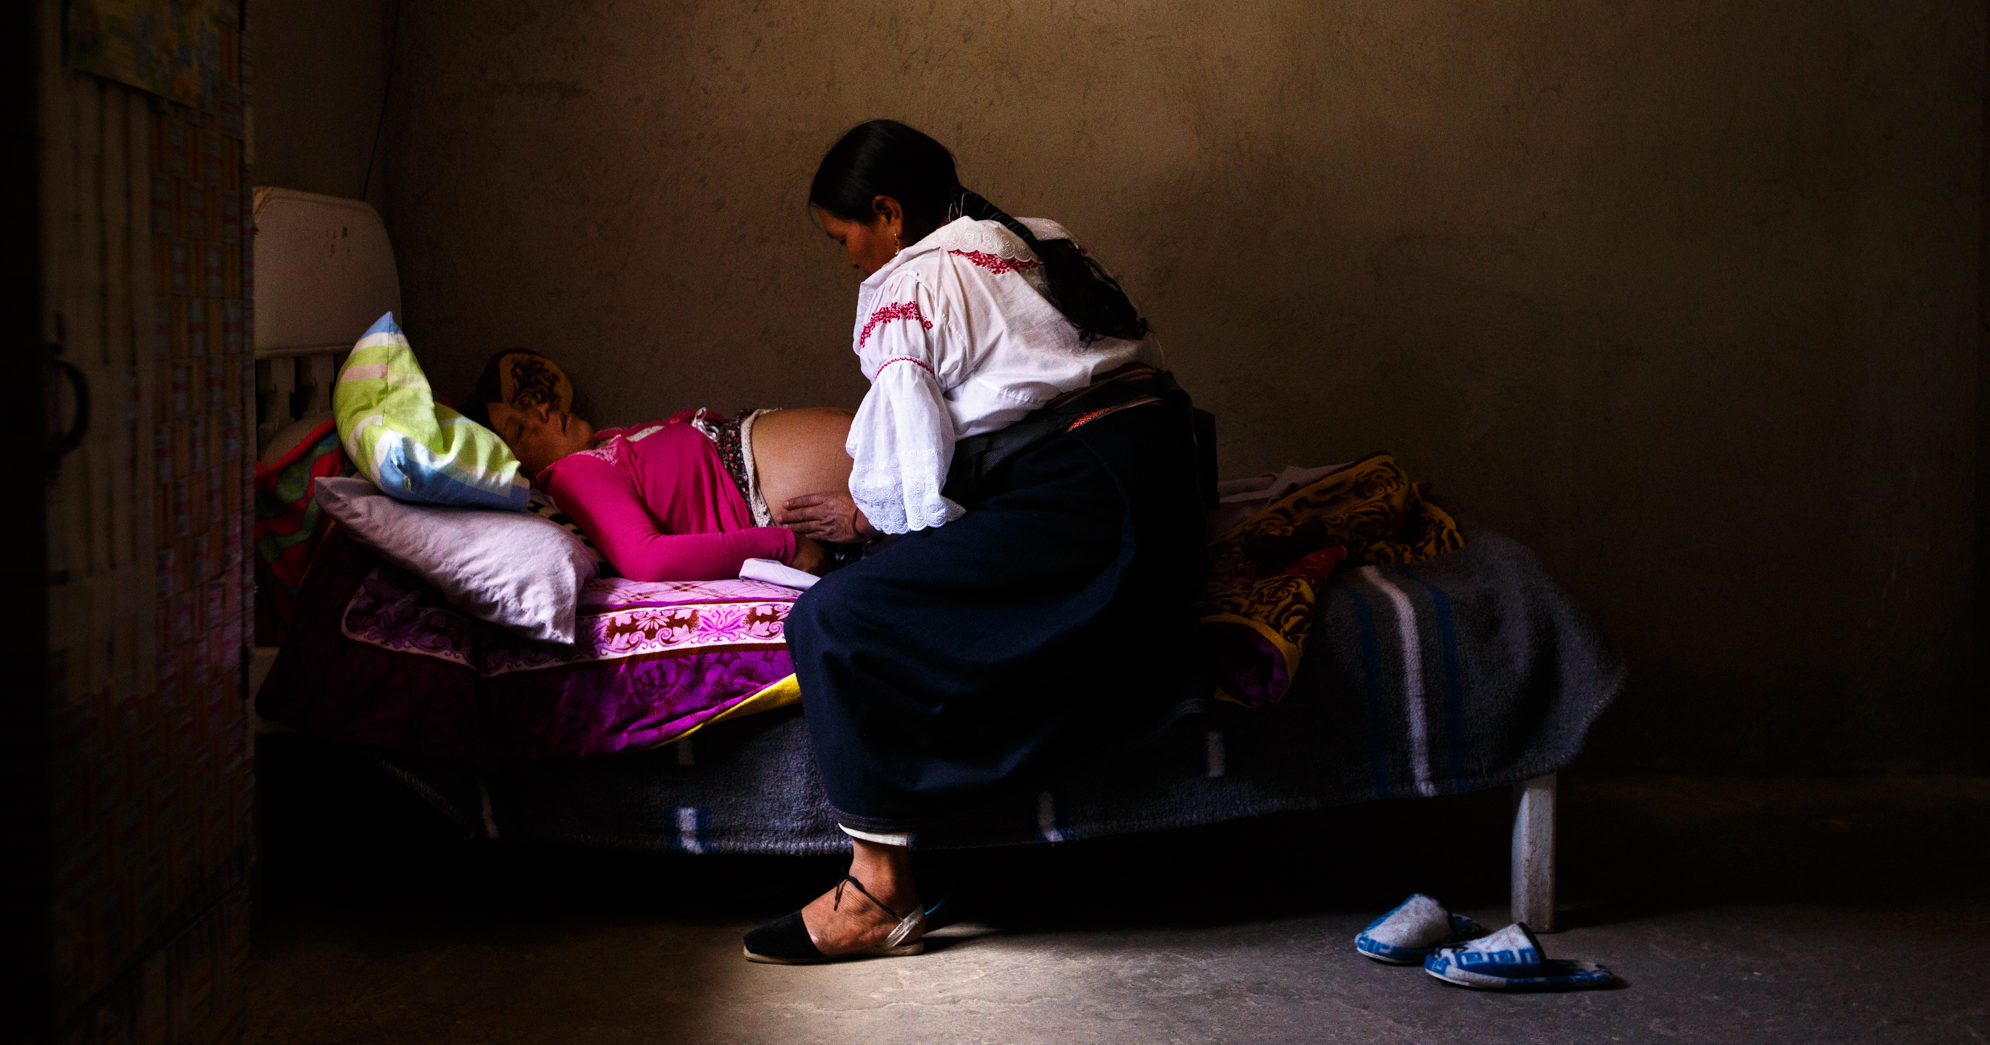 In rural Ecuador, midwife training and access is making a huge difference for maternal and child health.